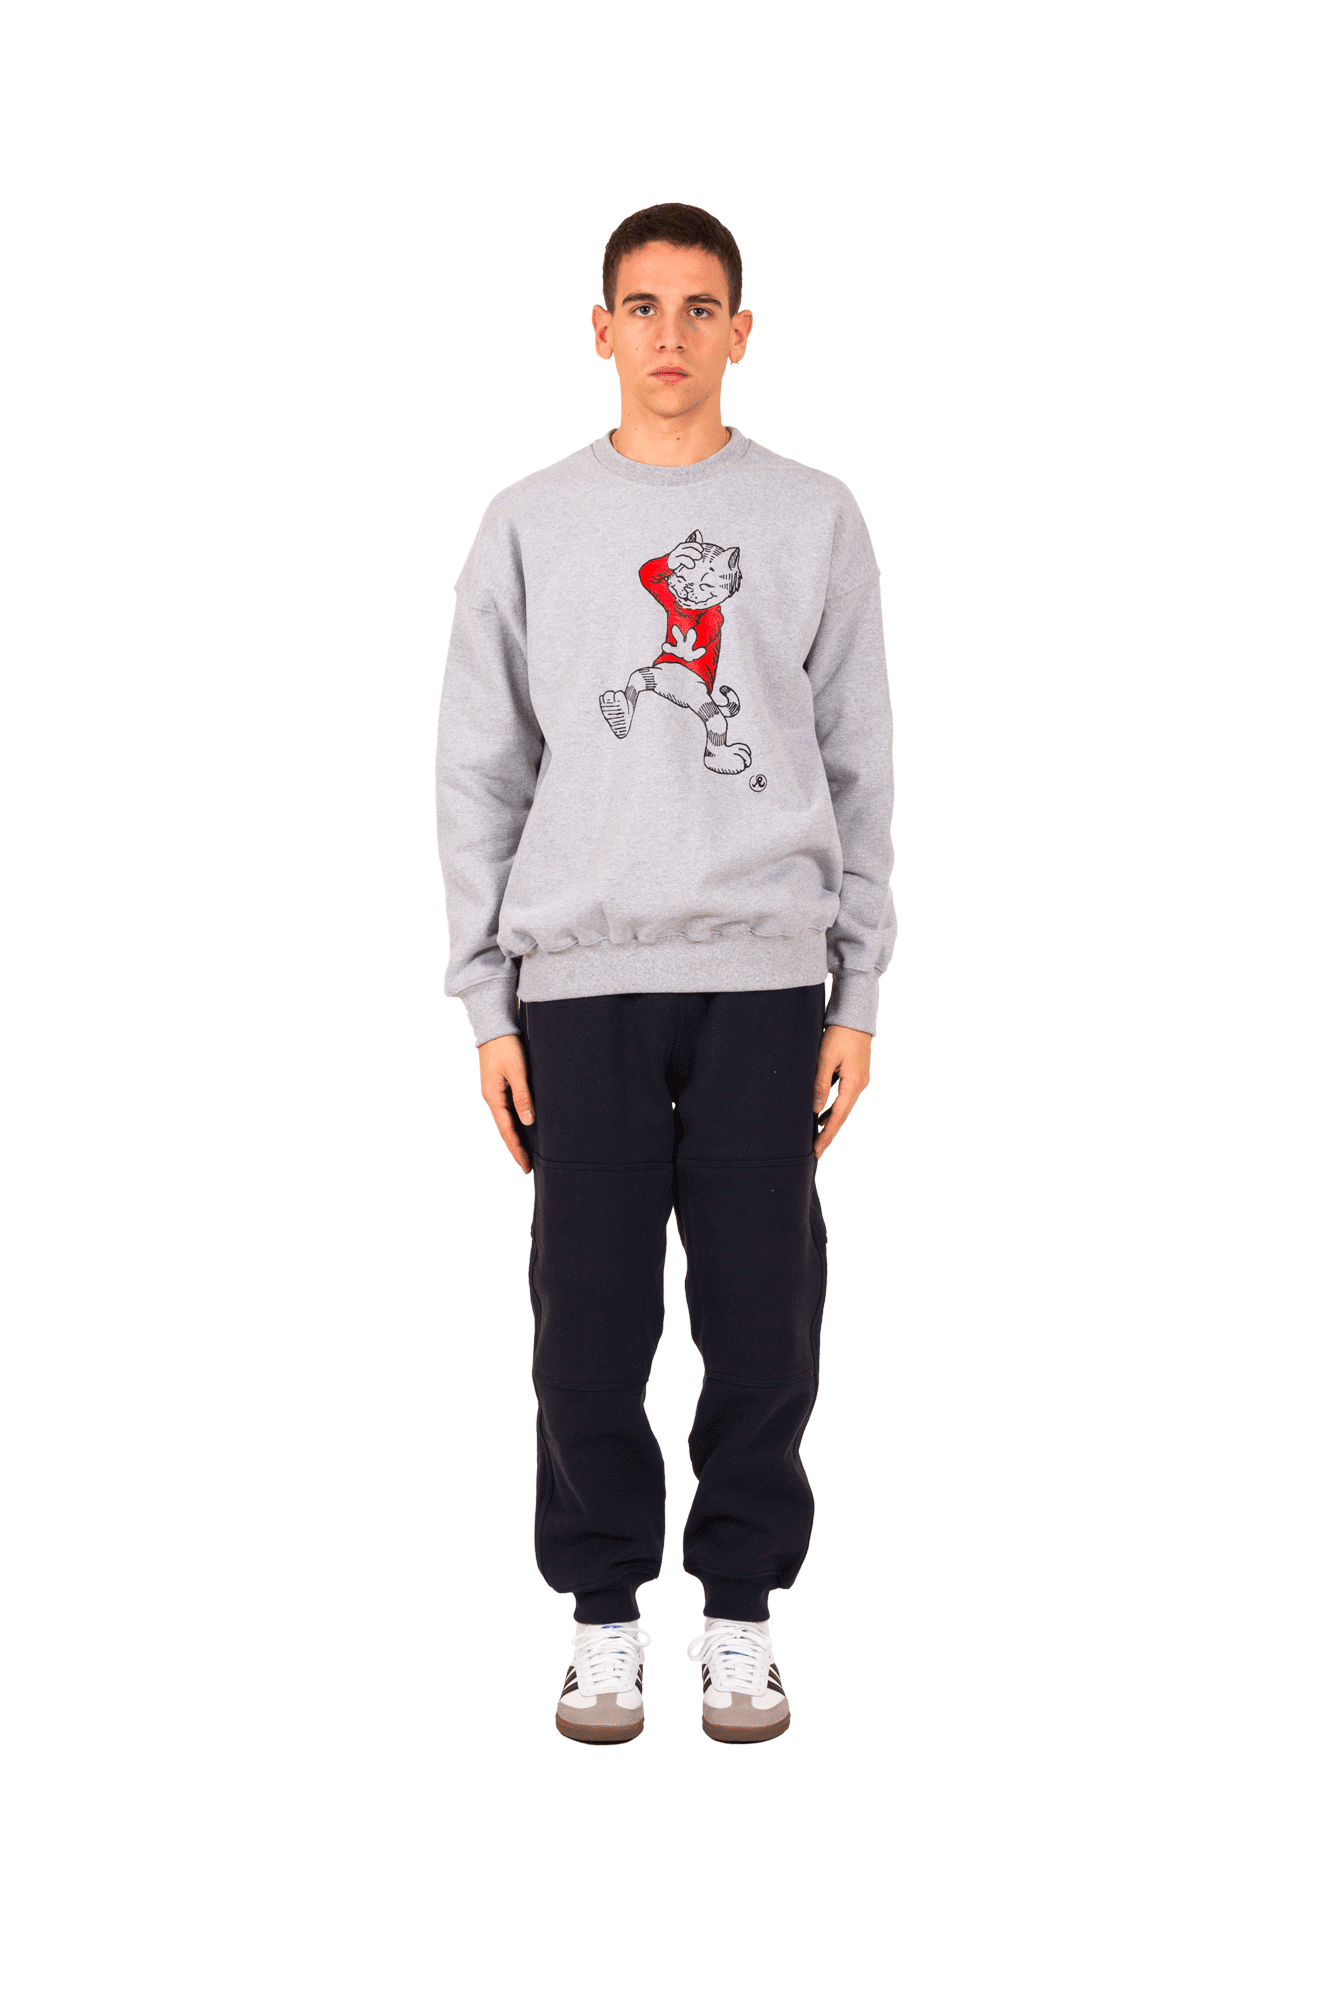 Richardson Mag Sweaters Fritz The Cat 9 Lives Crew Grey FTC9LIVESC#000#GRY#S - One Block Down